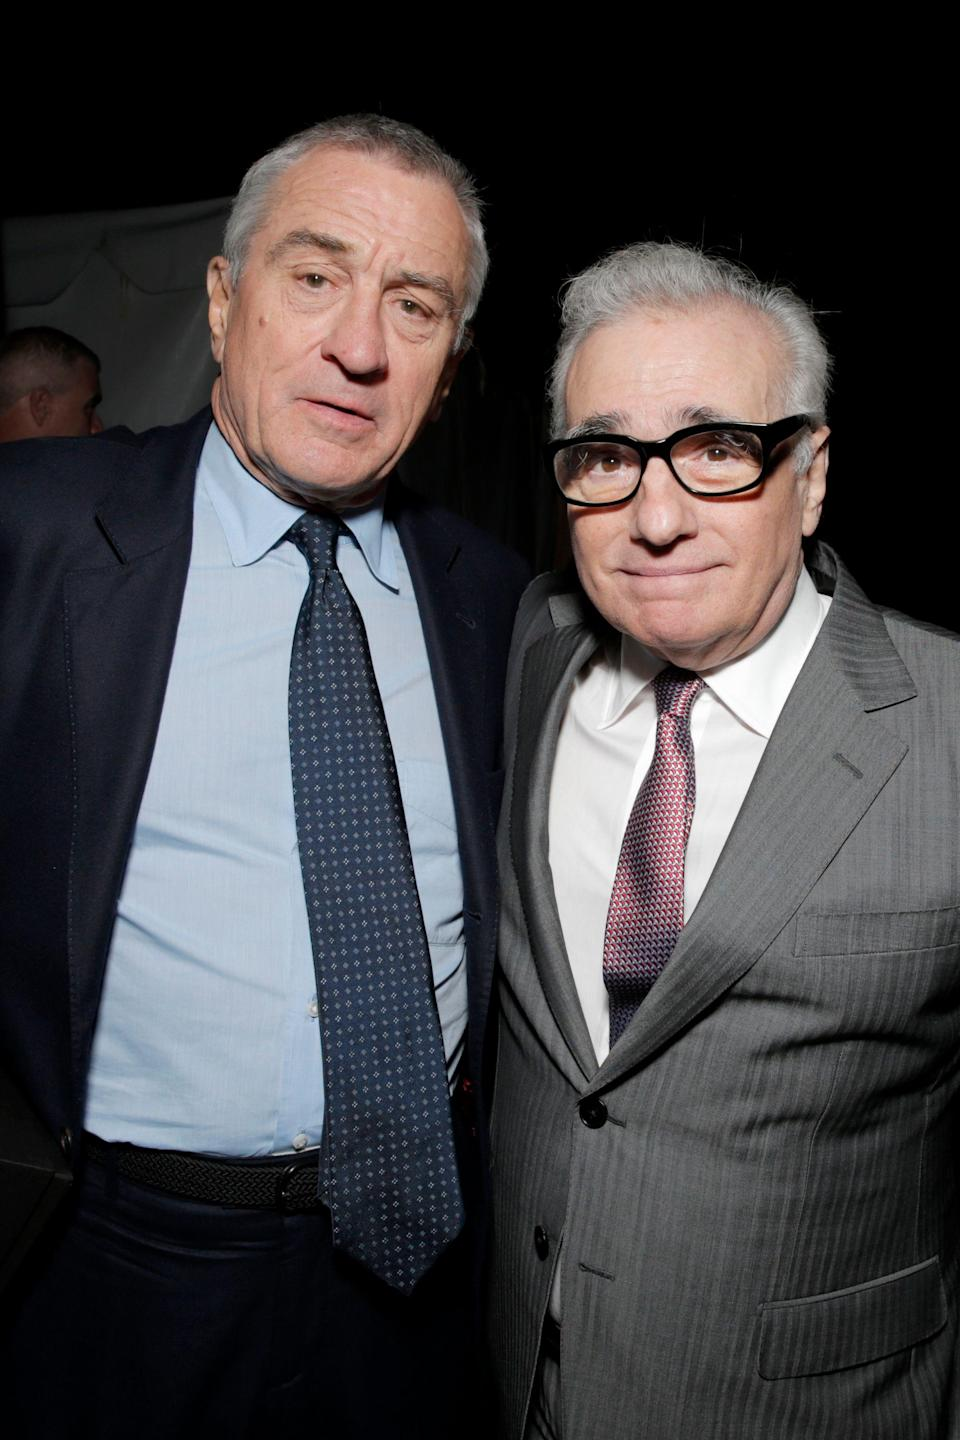 """<p><strong><em>The Irishman</em></strong><br>TBA</p><p>It's happening: The ninth collaboration between Martin Scorsese and Robert De Niro, 10 years in the making. And it's happening on Netflix. De Niro plays Frank """"The Irishman"""" Sheeran, a labor union official with mafia connections. On his deathbed, he claims responsibility for the death of labour organiser Jim Hoffa (Al Pacino).</p><span class=""""copyright"""">Todd Williamson/Invision/AP/REX/Shutterstock</span>"""